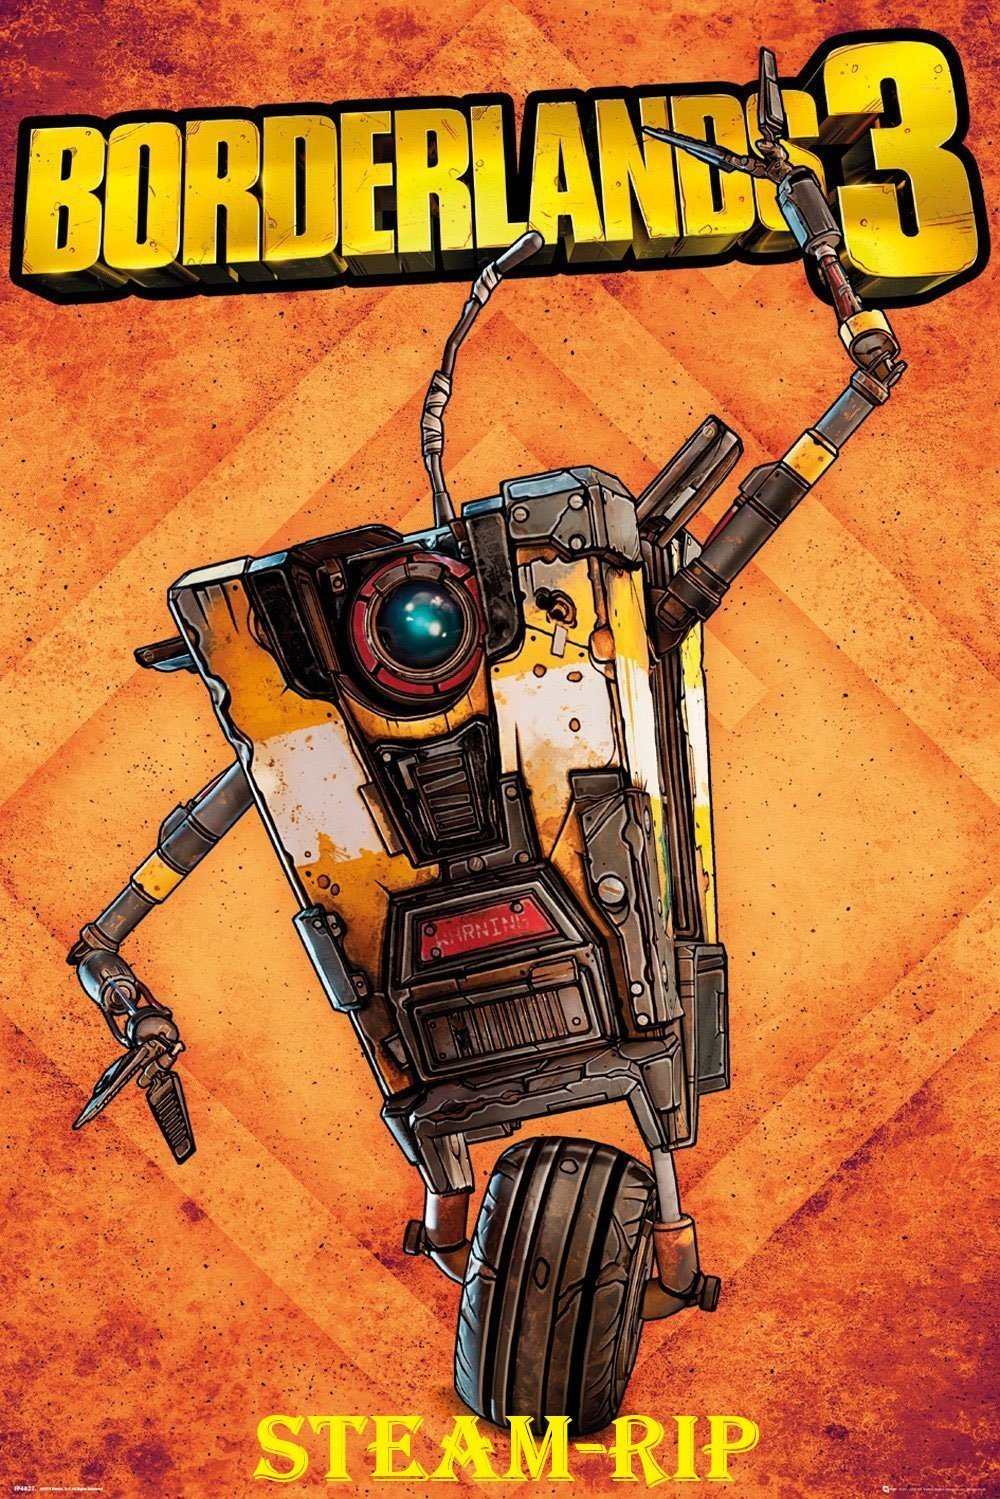 Borderlands 3 [Steam-Rip] (2019) Лицензия